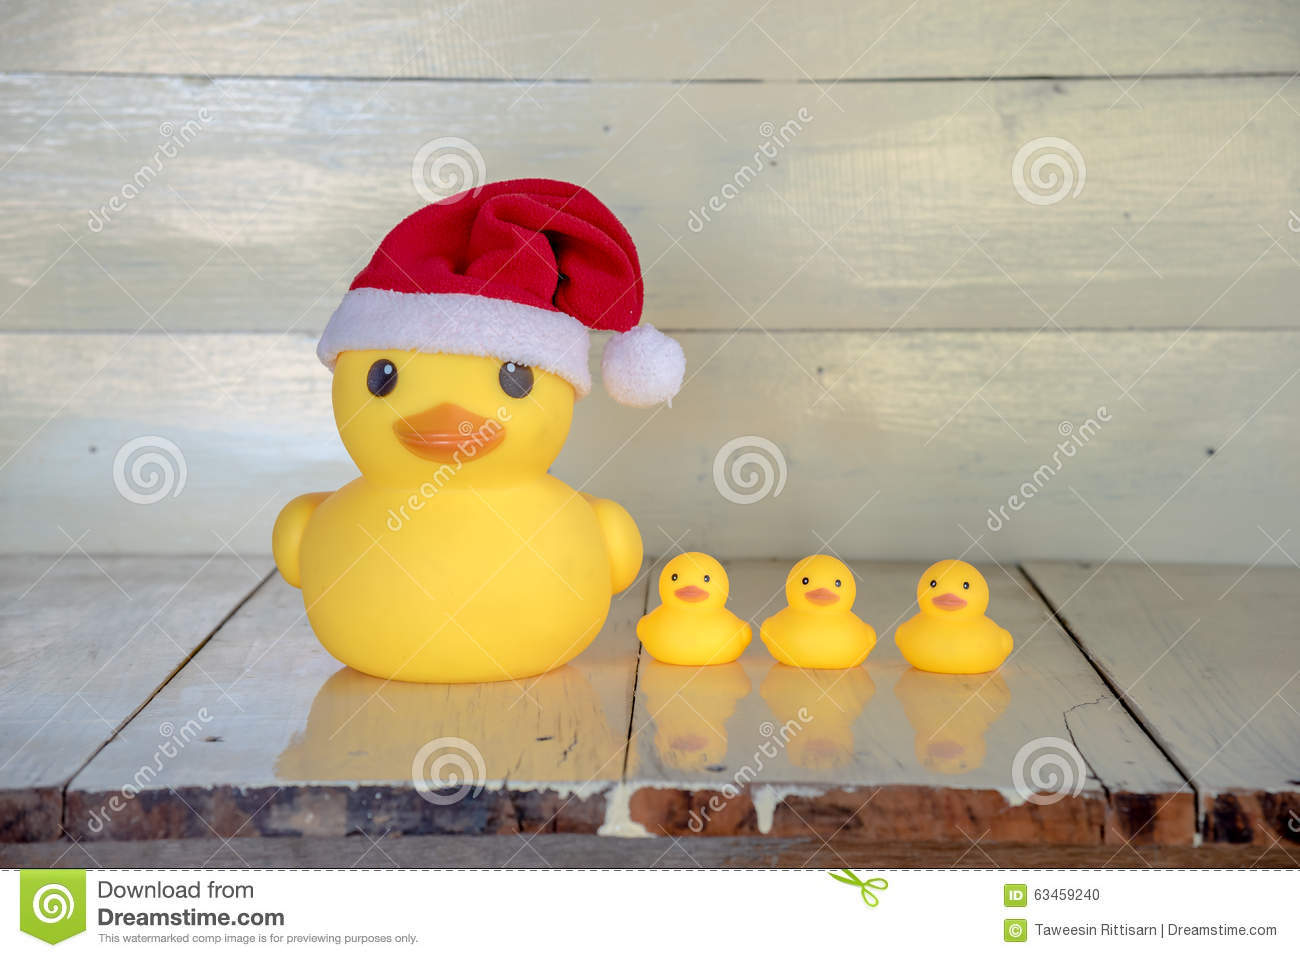 download christmas concept rubber yellow duck wear santa clause hat stock photo image of - Christmas Duck